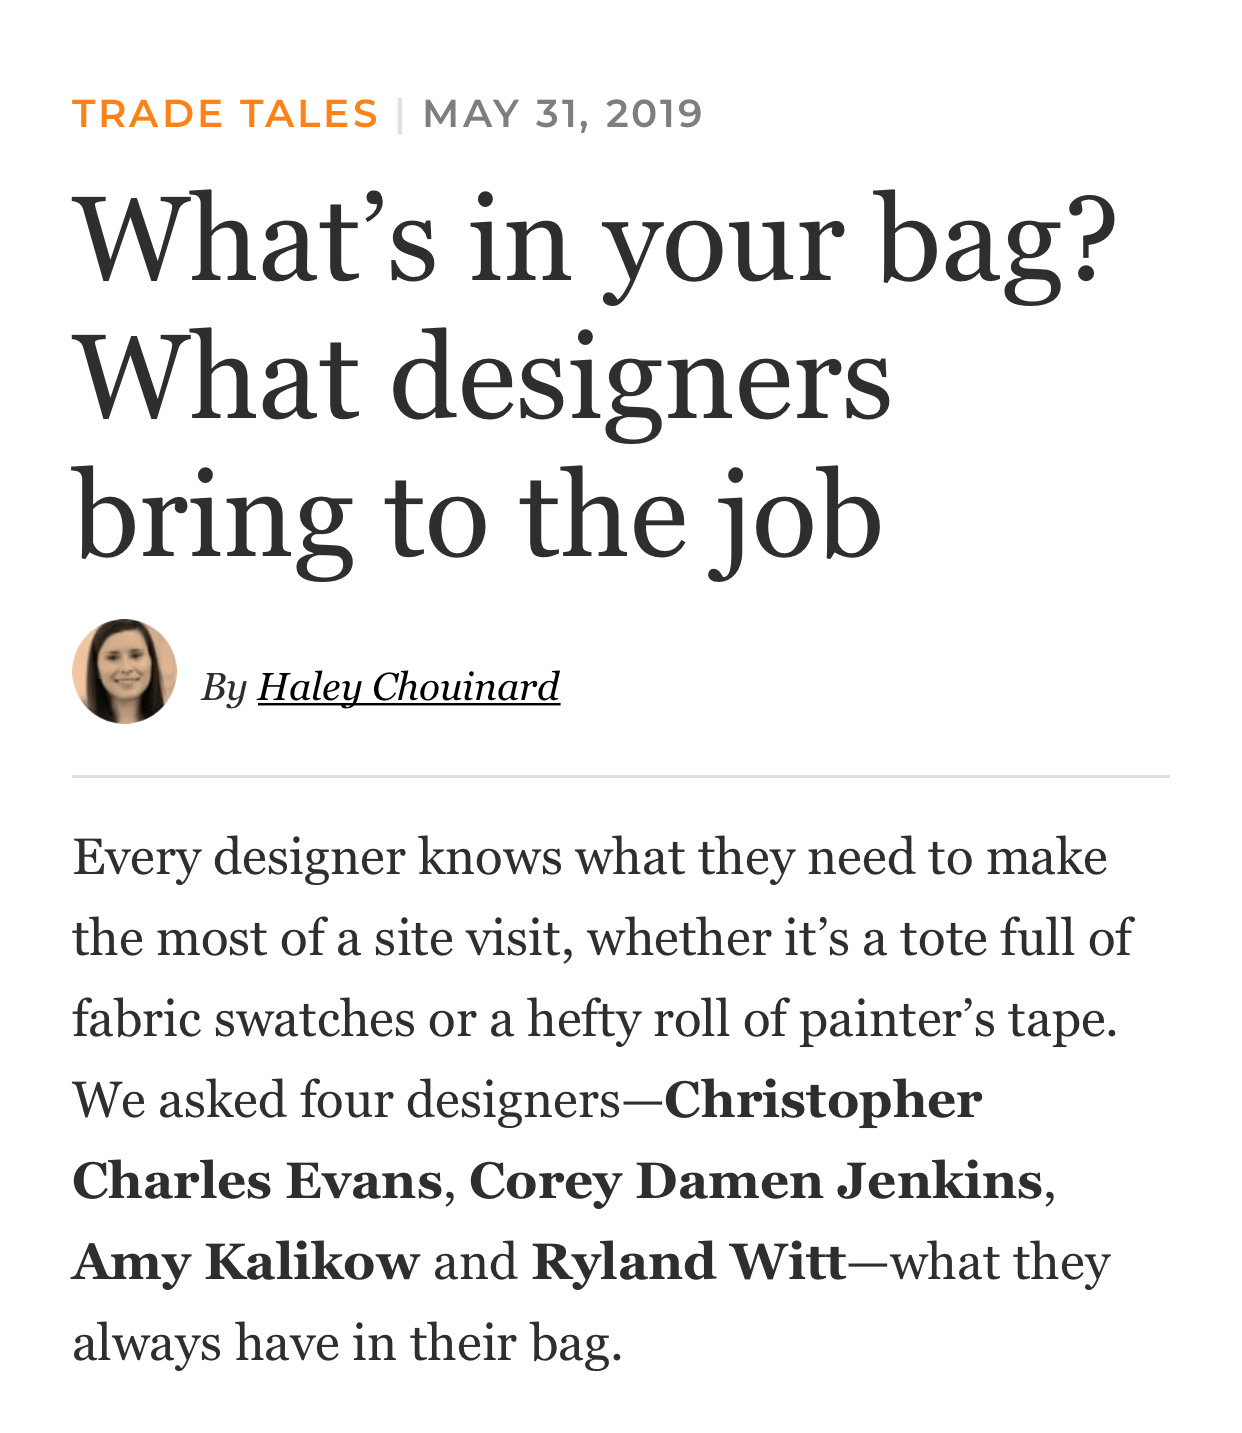 Featuring Amy Kalikow - Business of Home interviews designers Amy Kalikow, Corey Damen Jenkins, Charles Evans + Ryland Witt 5.19